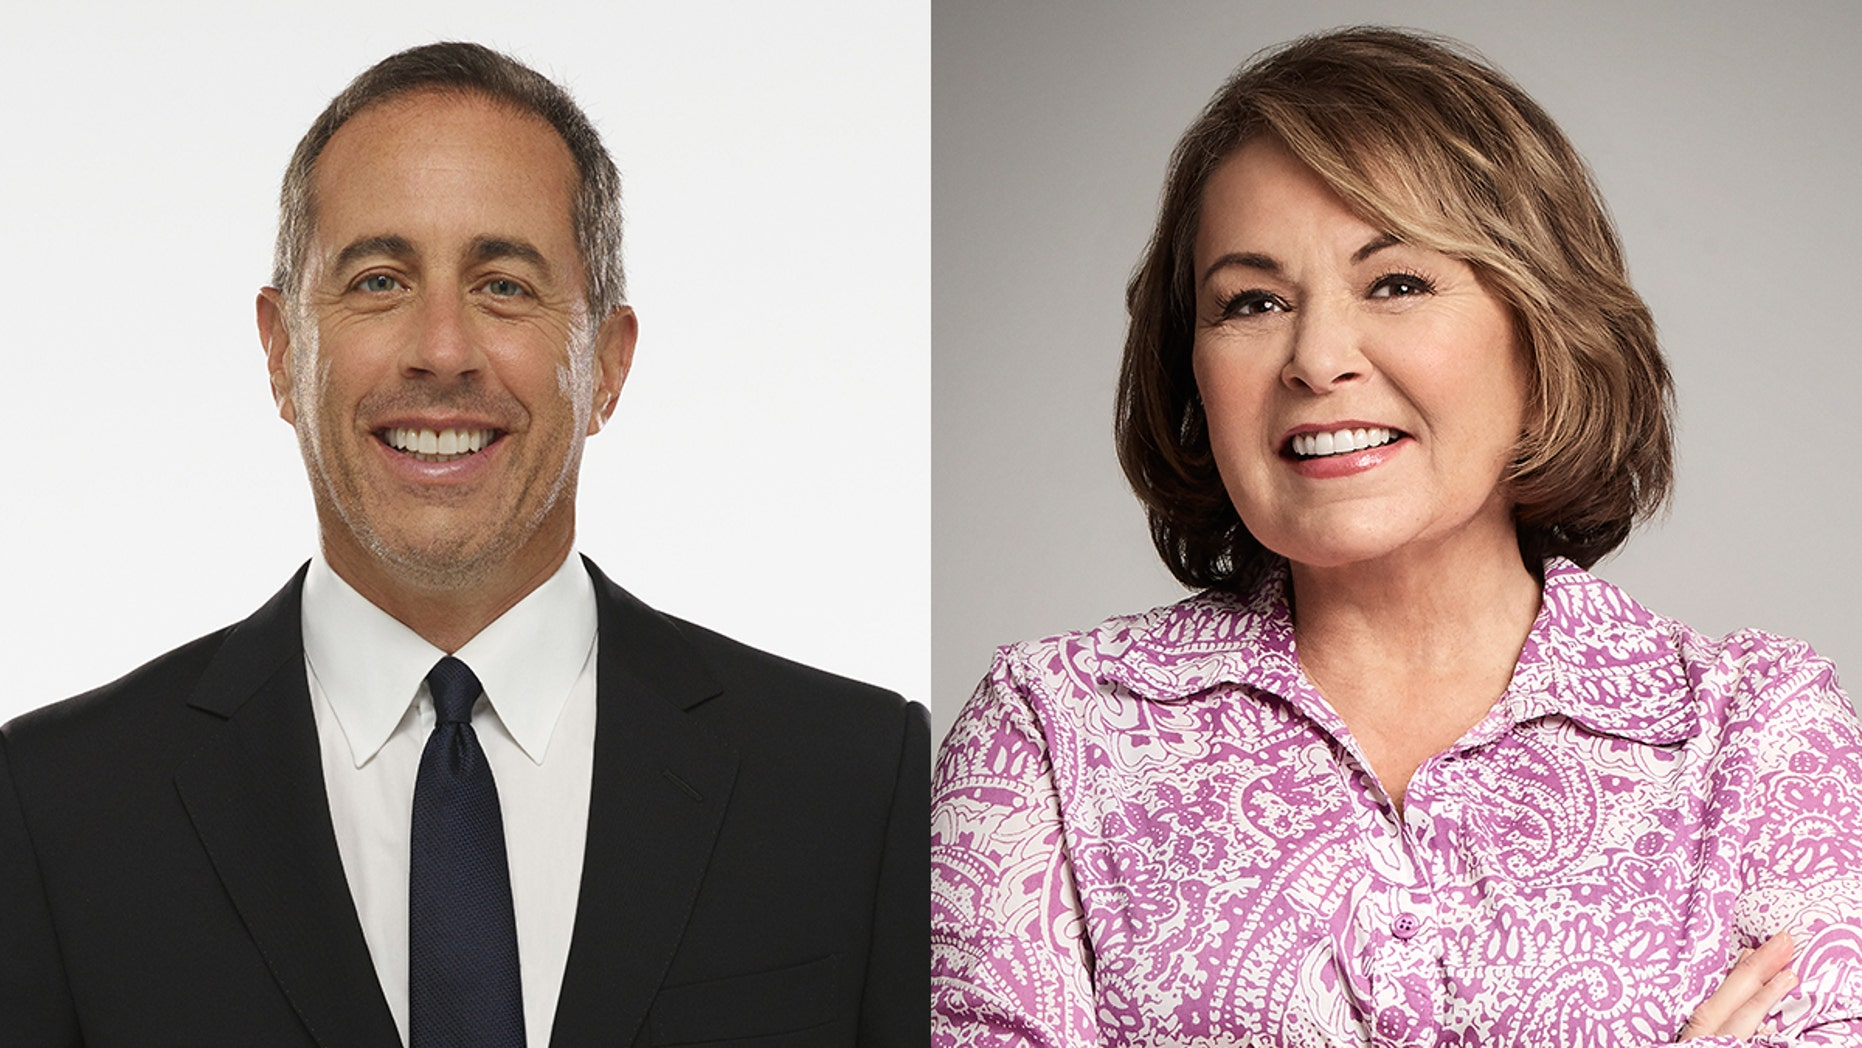 Jerry Seinfeld questioned why ABC made the decision to fire Roseanne Barr.